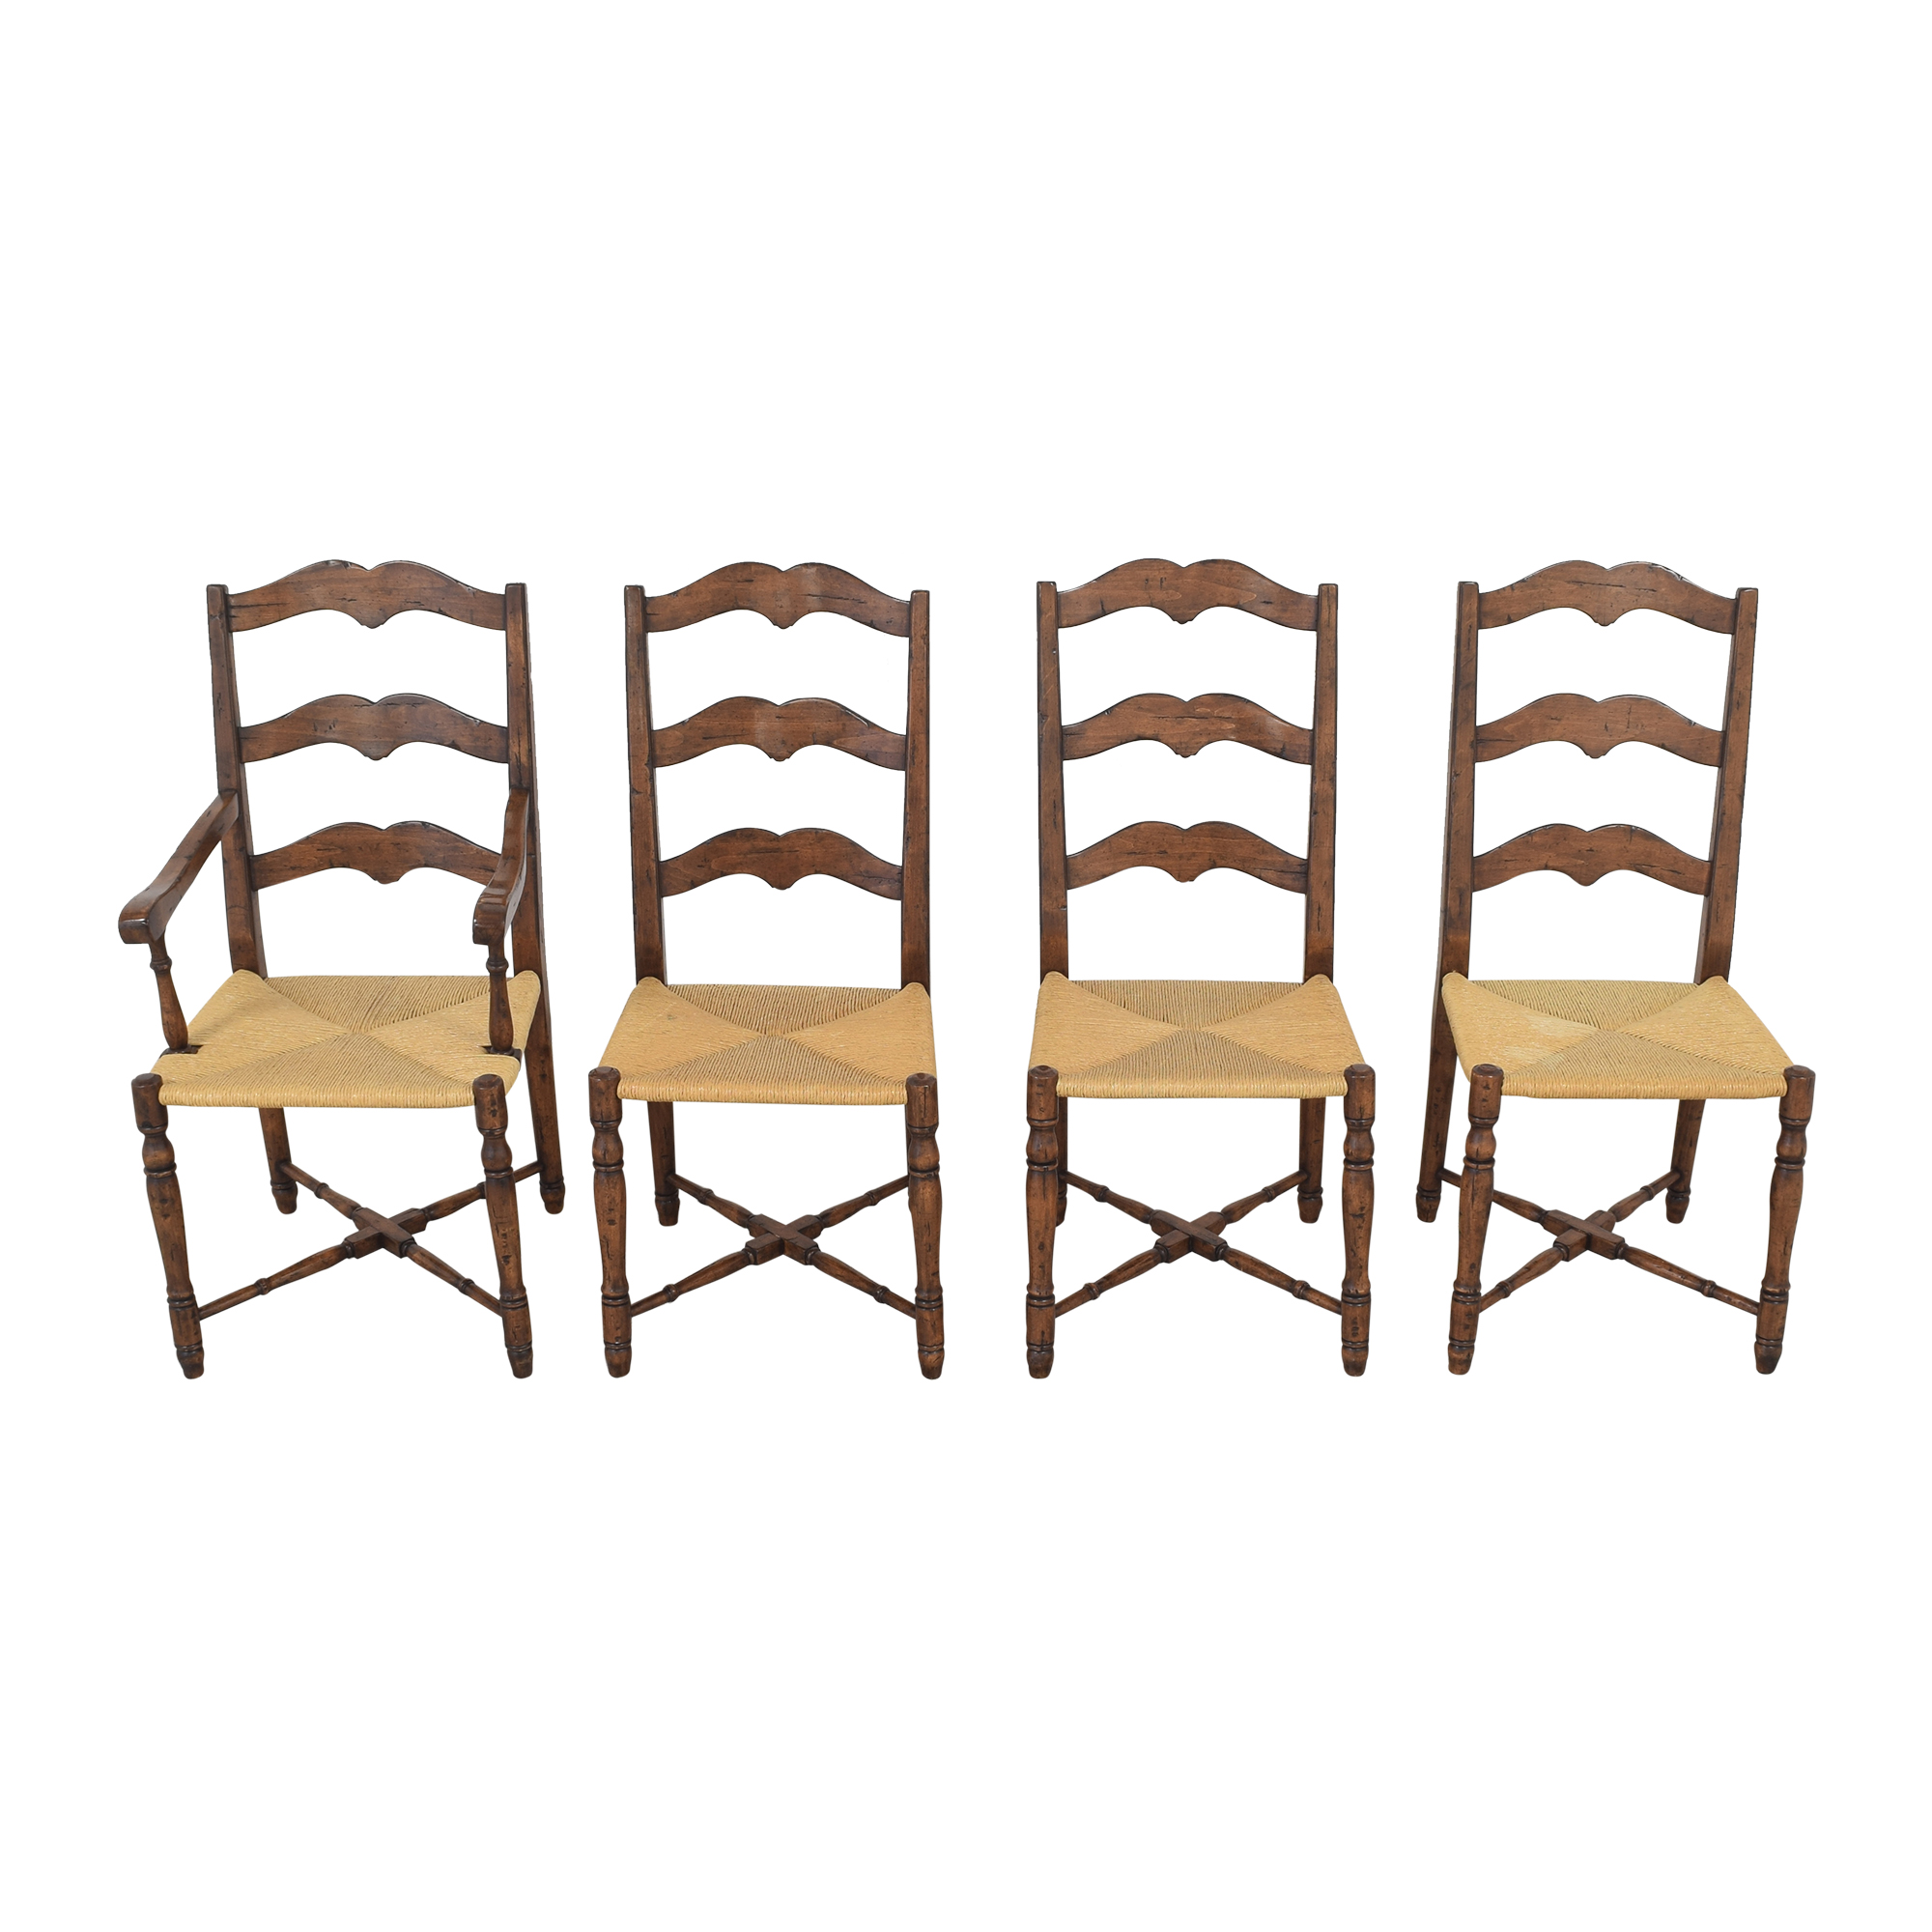 Pottery Barn Pottery Barn Lorraine Dining Chairs discount